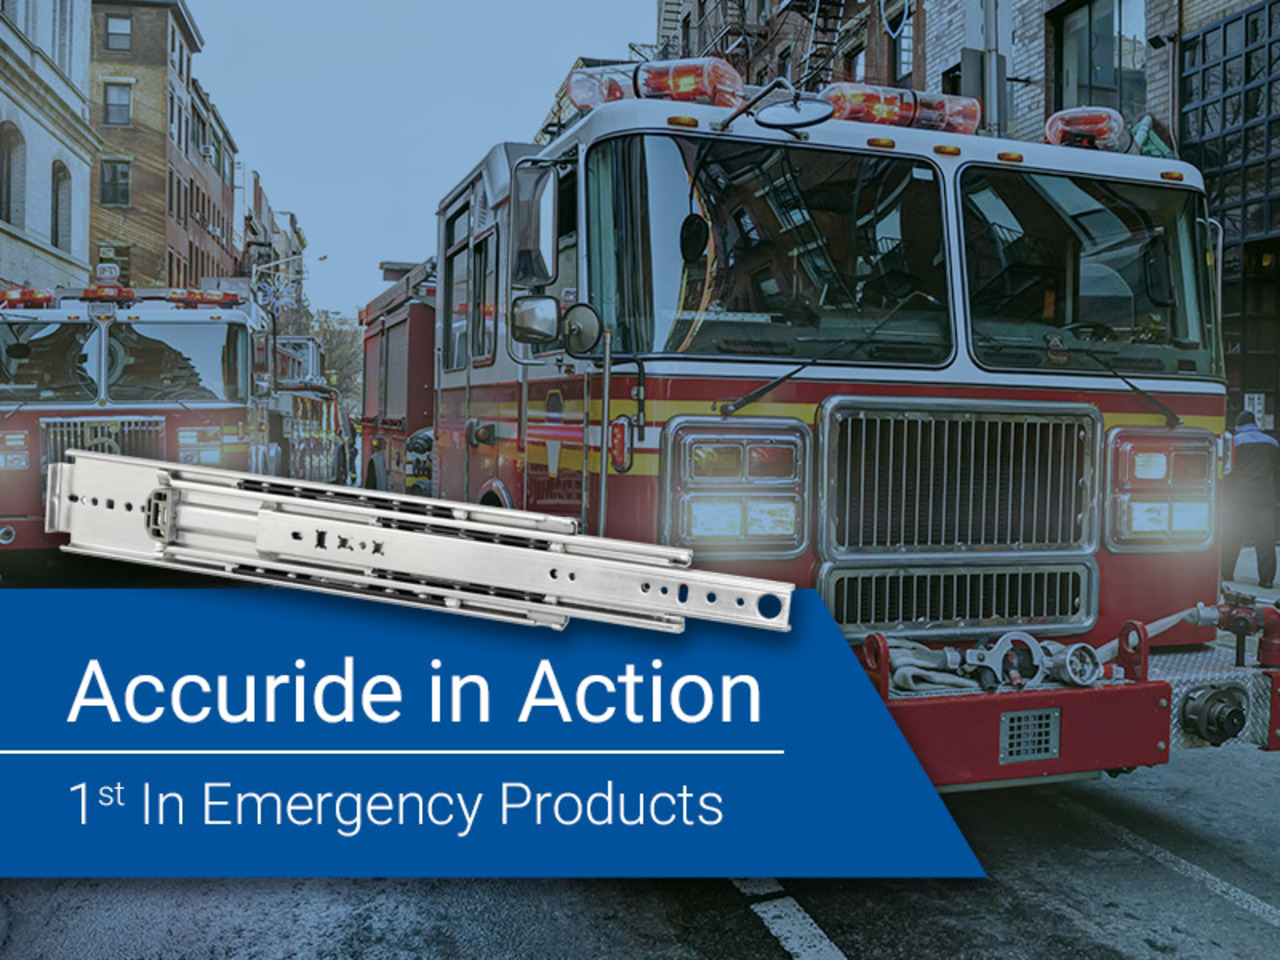 Accuride Drawer Slides Accuride International Drawer Slides Offer Life Saving Solution